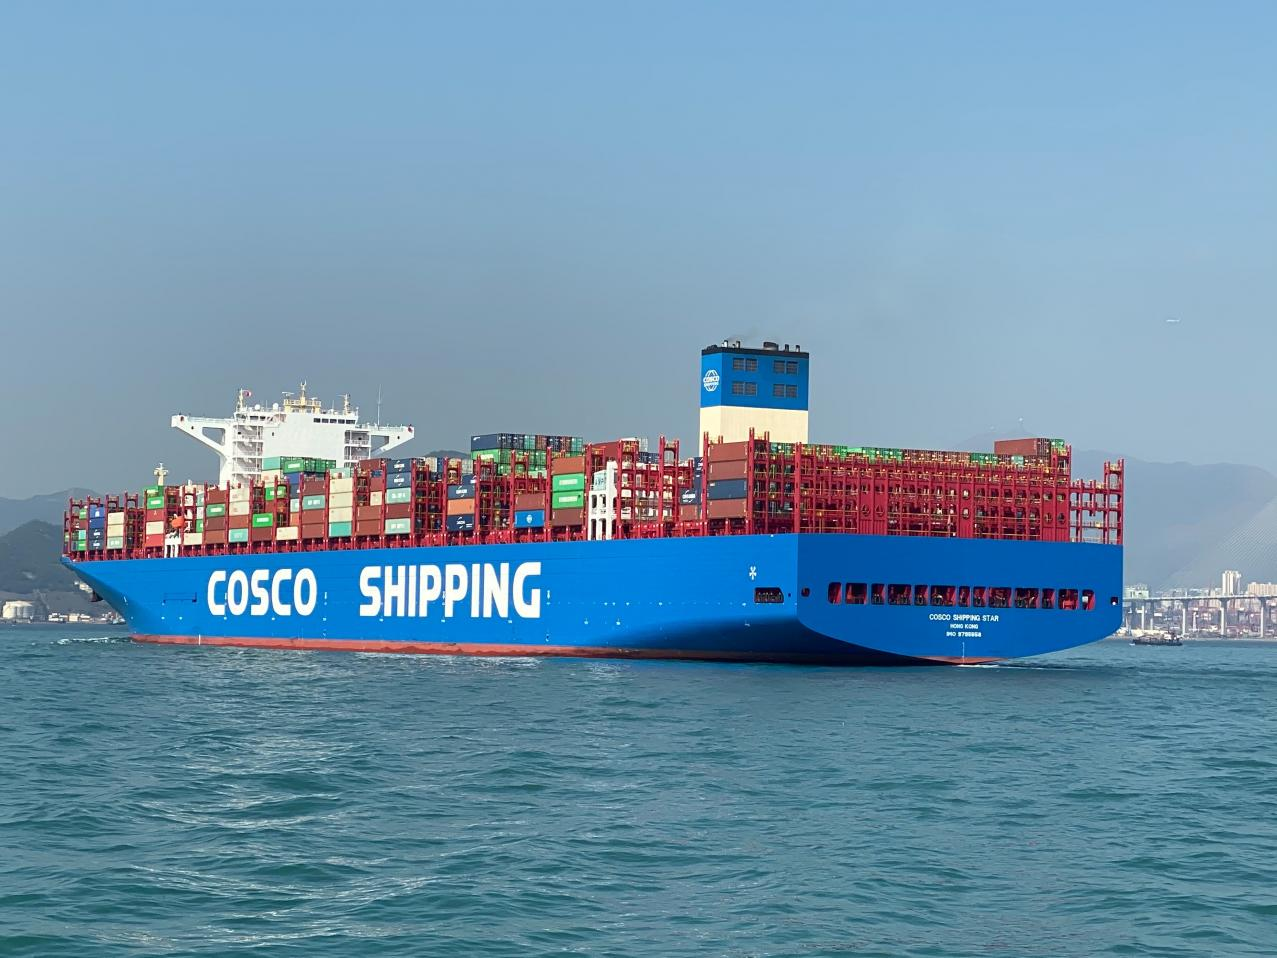 Cosco Shipping cargo vessel